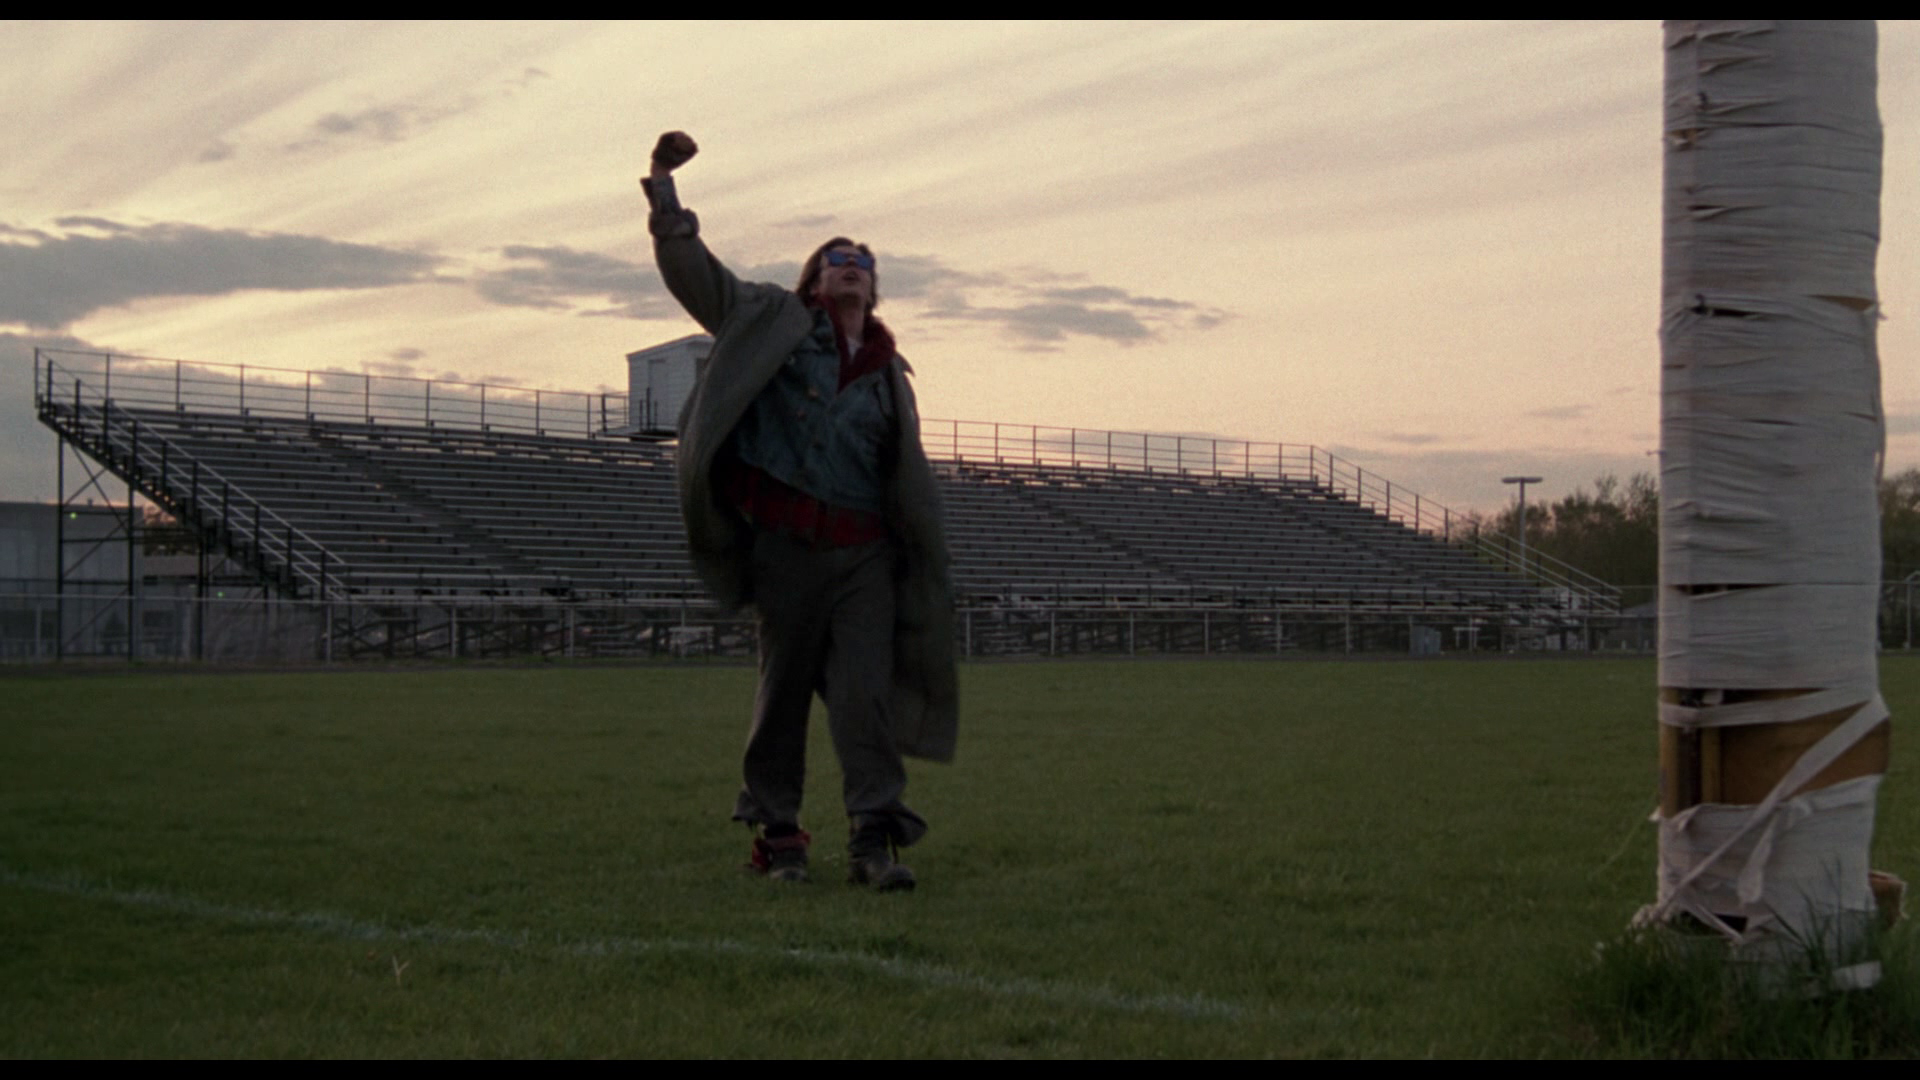 The Breakfast Club — Shot-for-Shot Analysis of the Opening